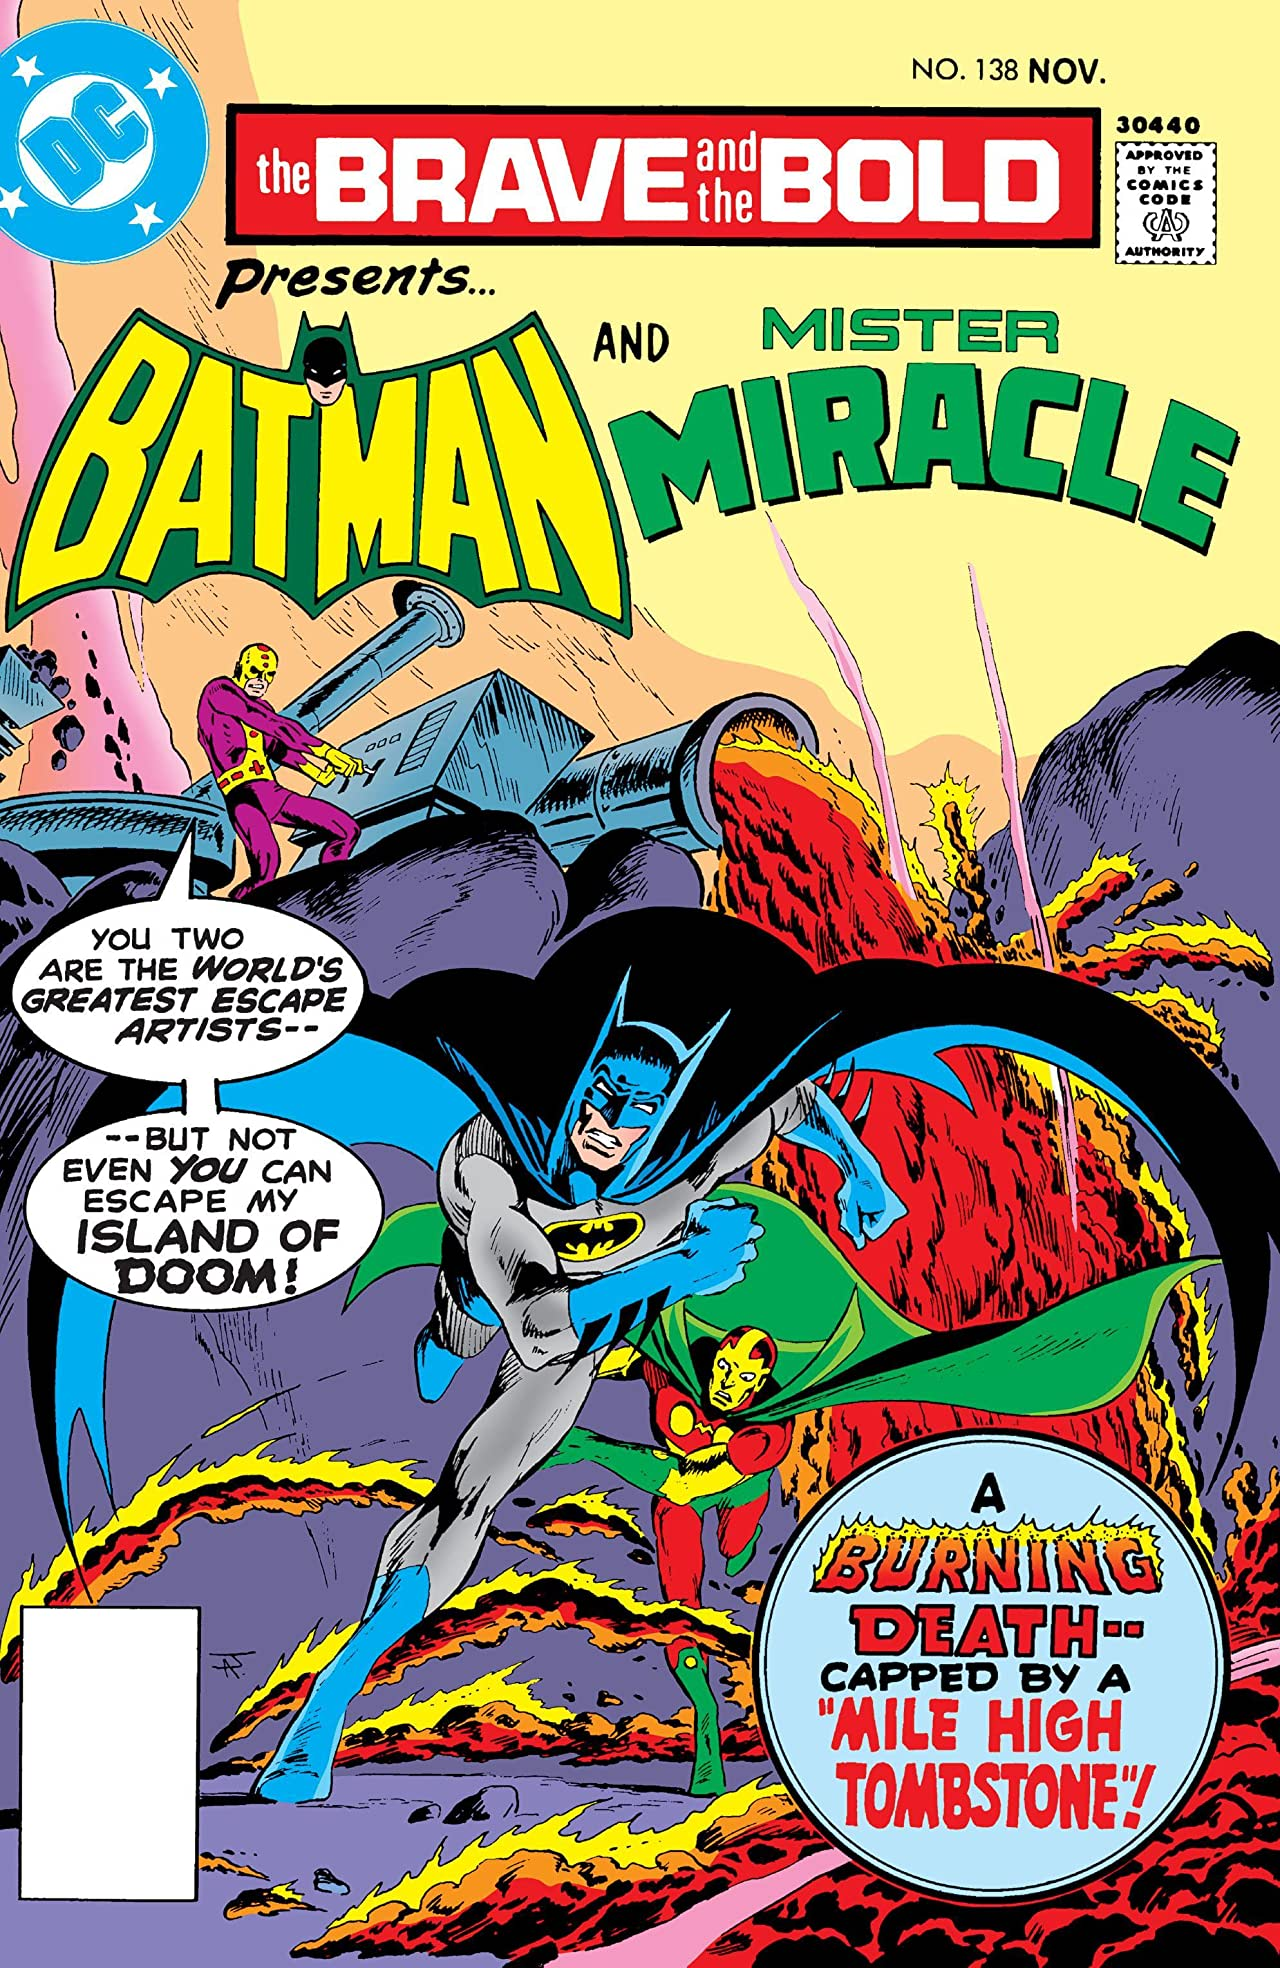 The Brave and the Bold (1955-1983) #138